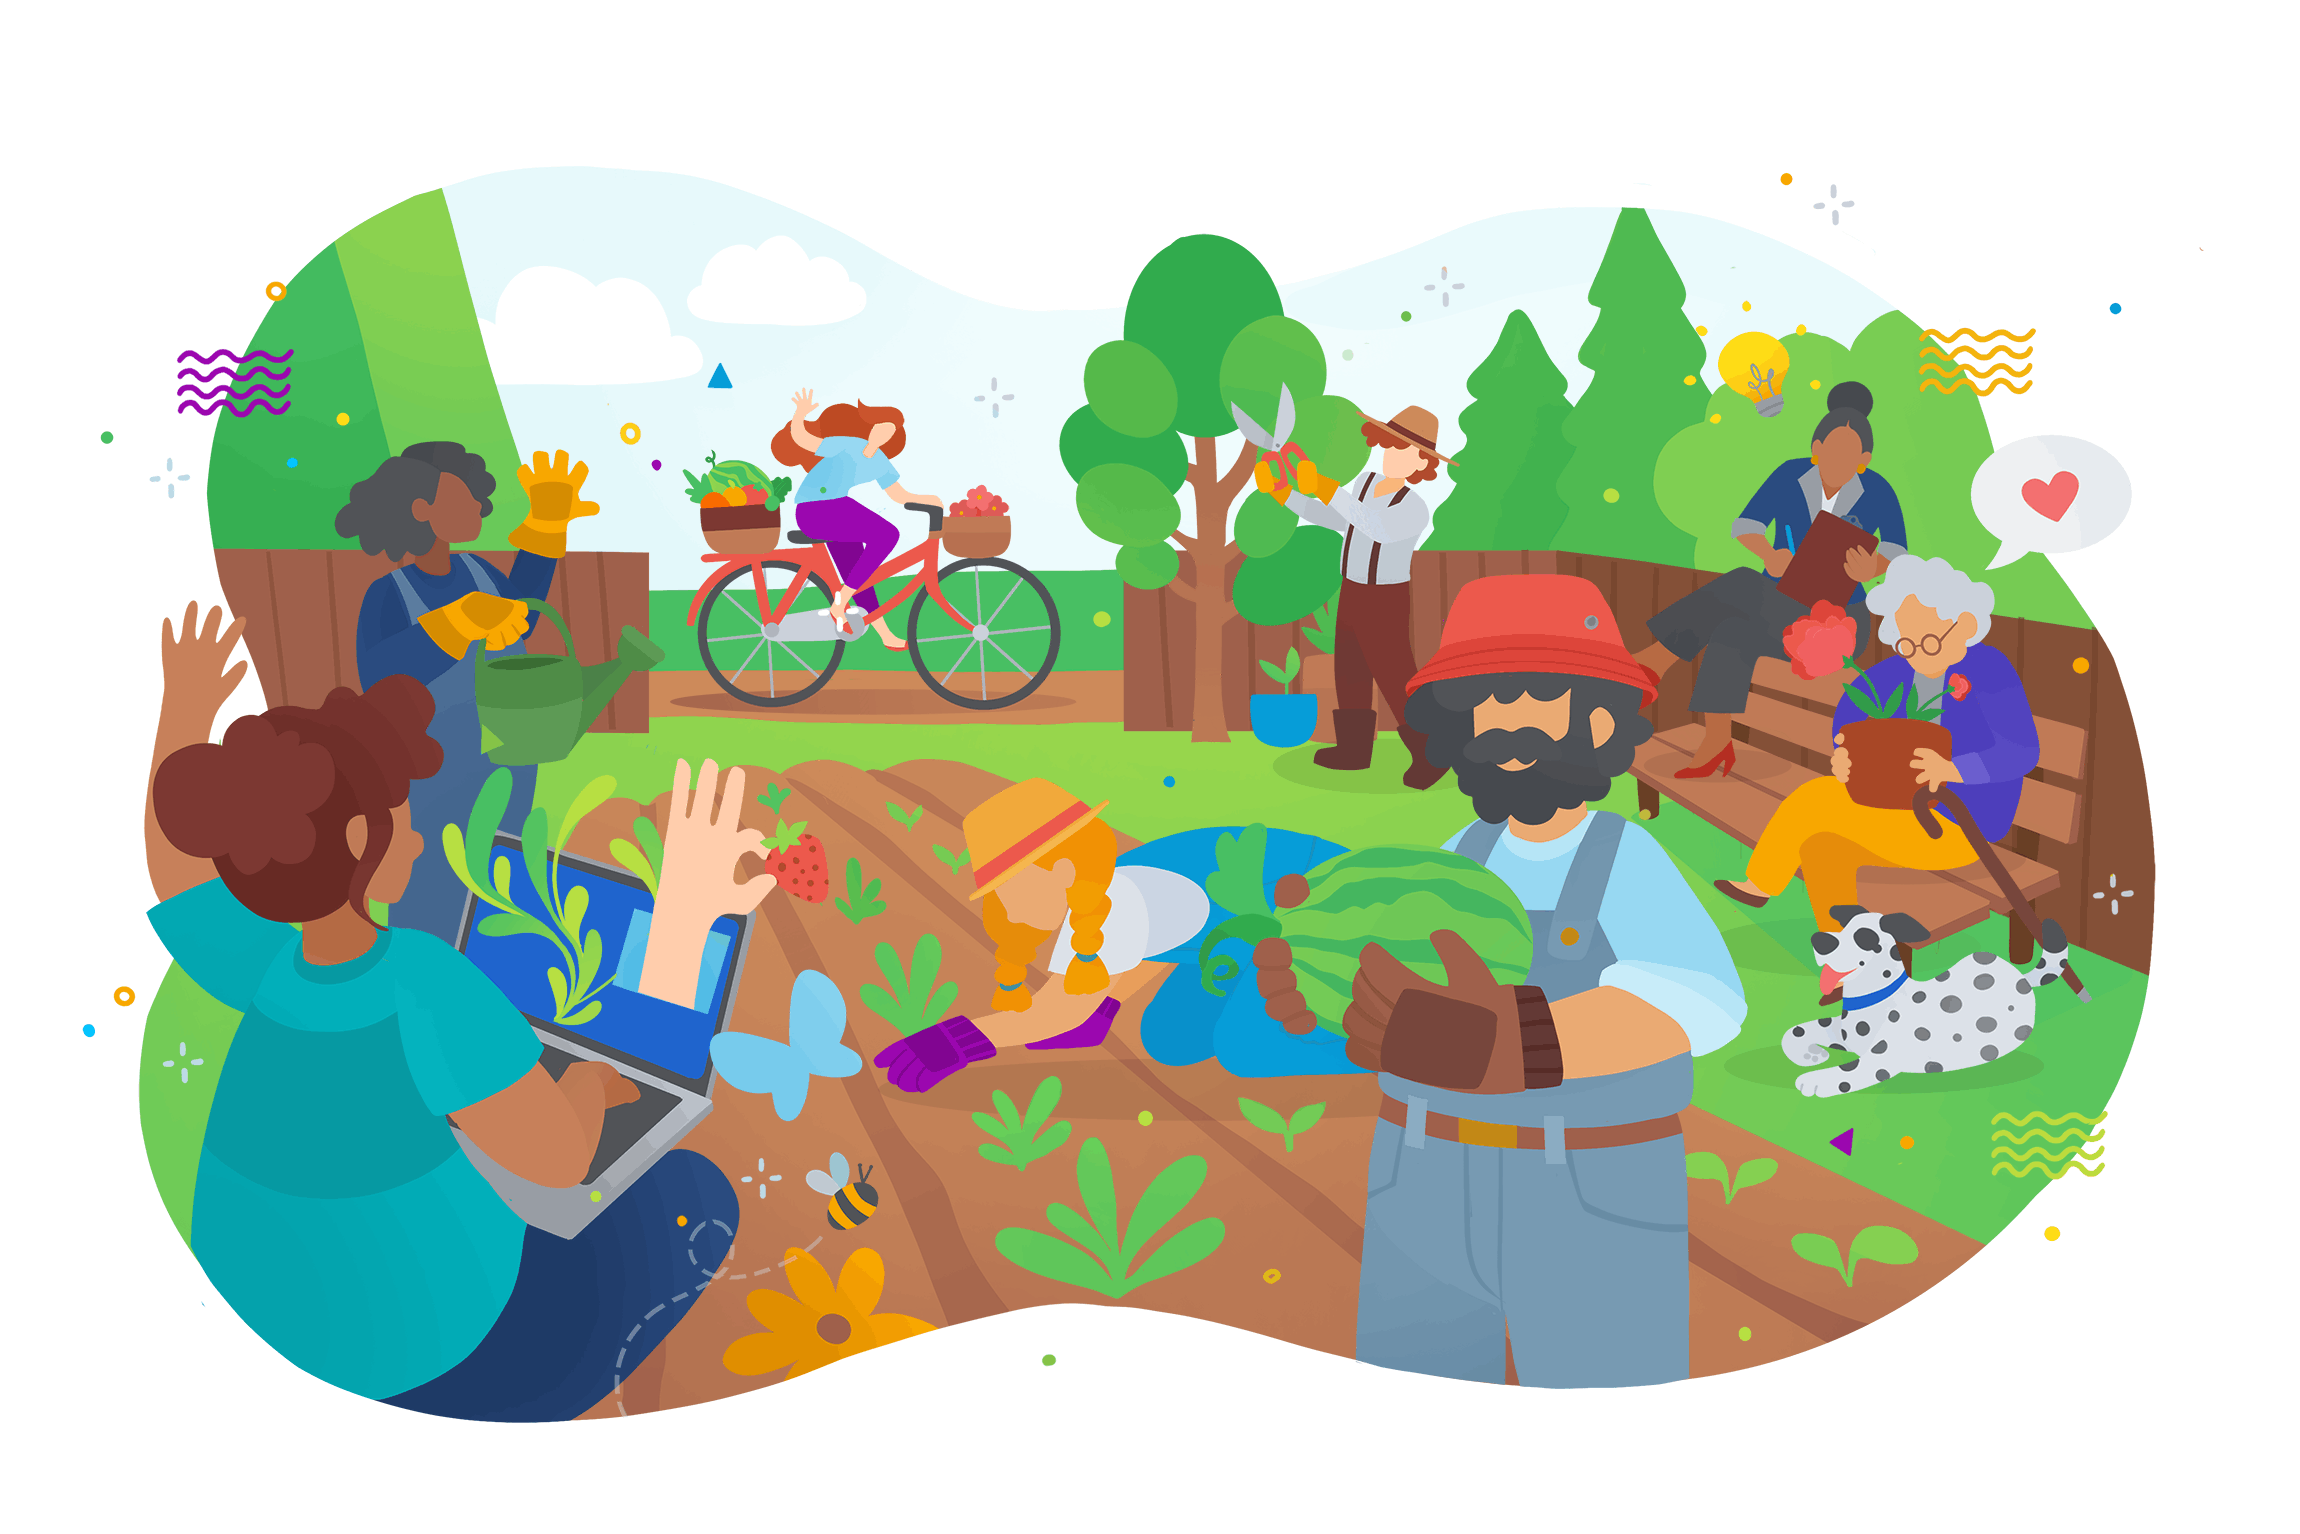 A colourful cartoon illustration of a community garden with working together.